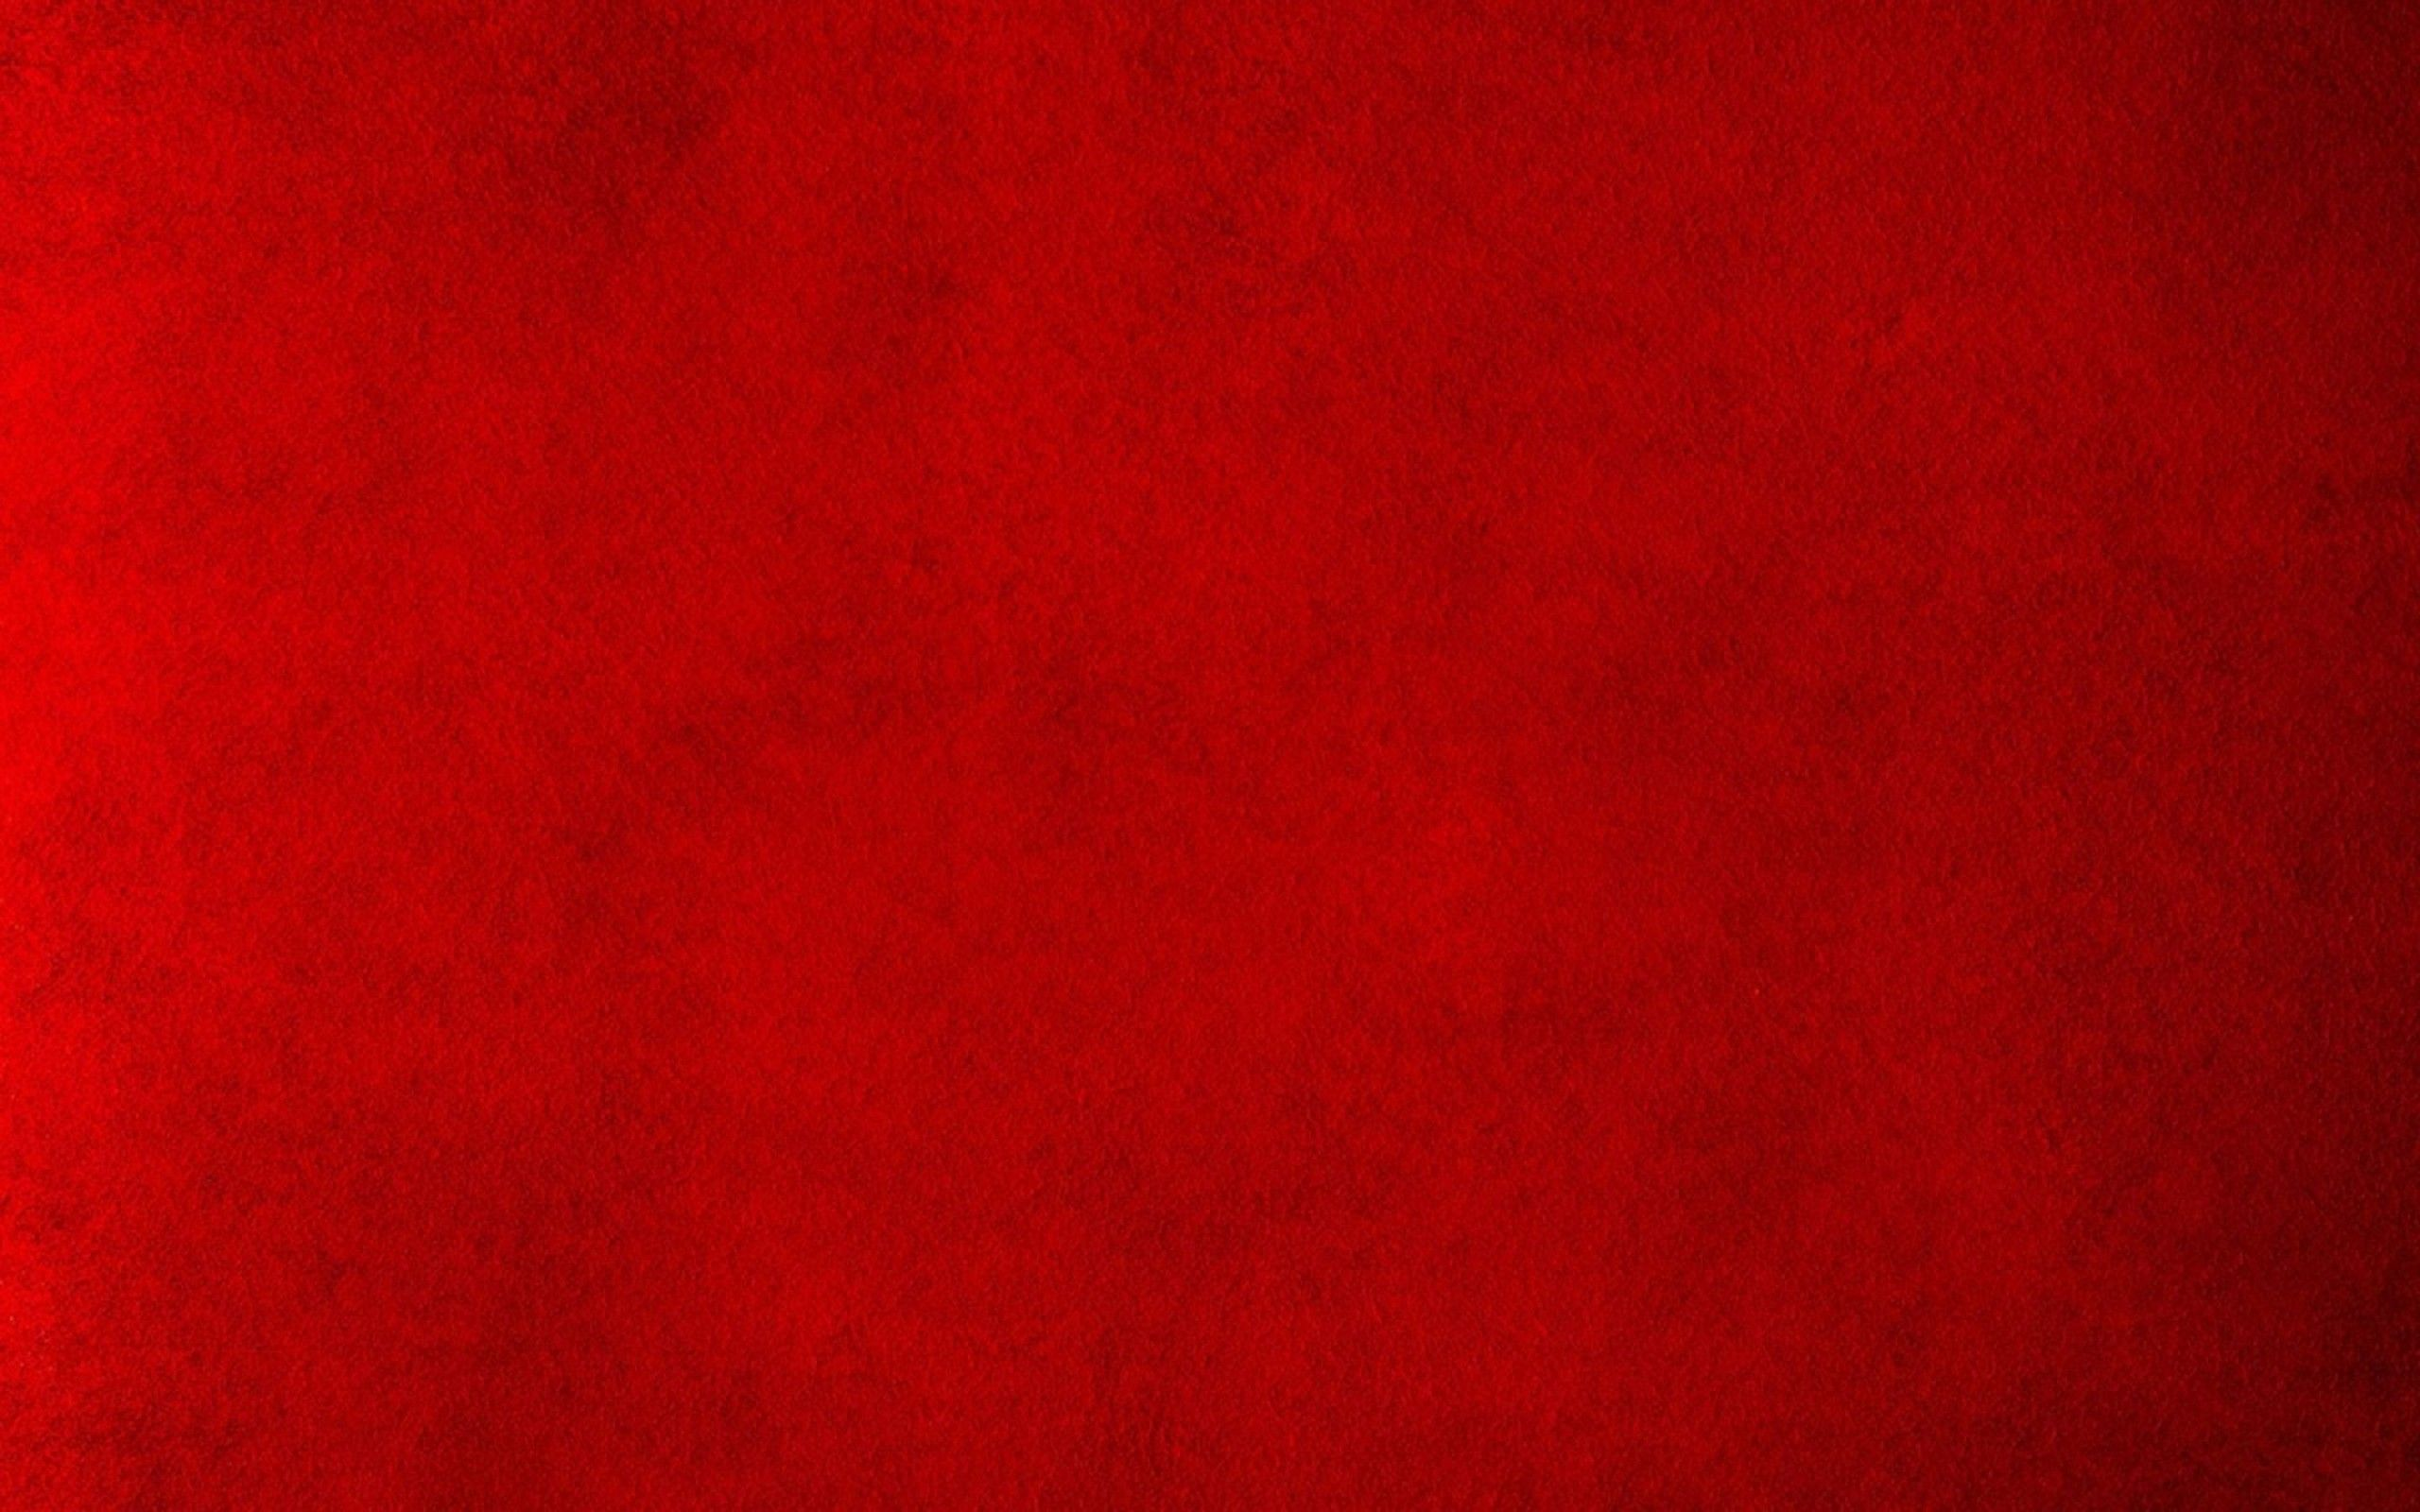 Simple Red Hd Wallpapers Top Free Simple Red Hd